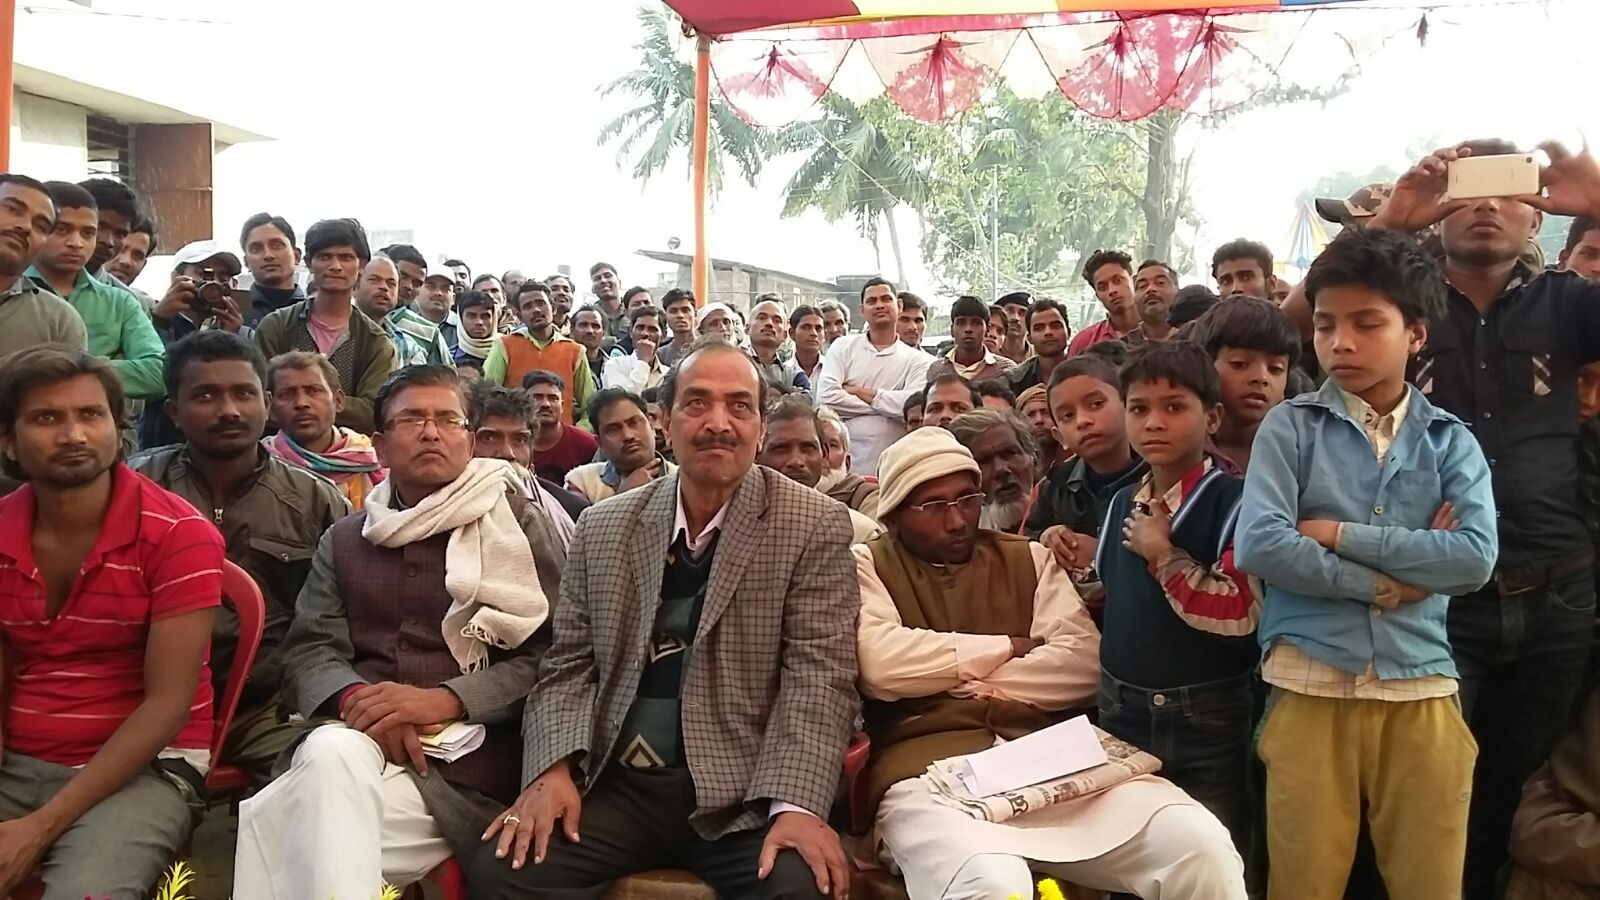 People at Kudratullah Shraddhanjali Sabha .